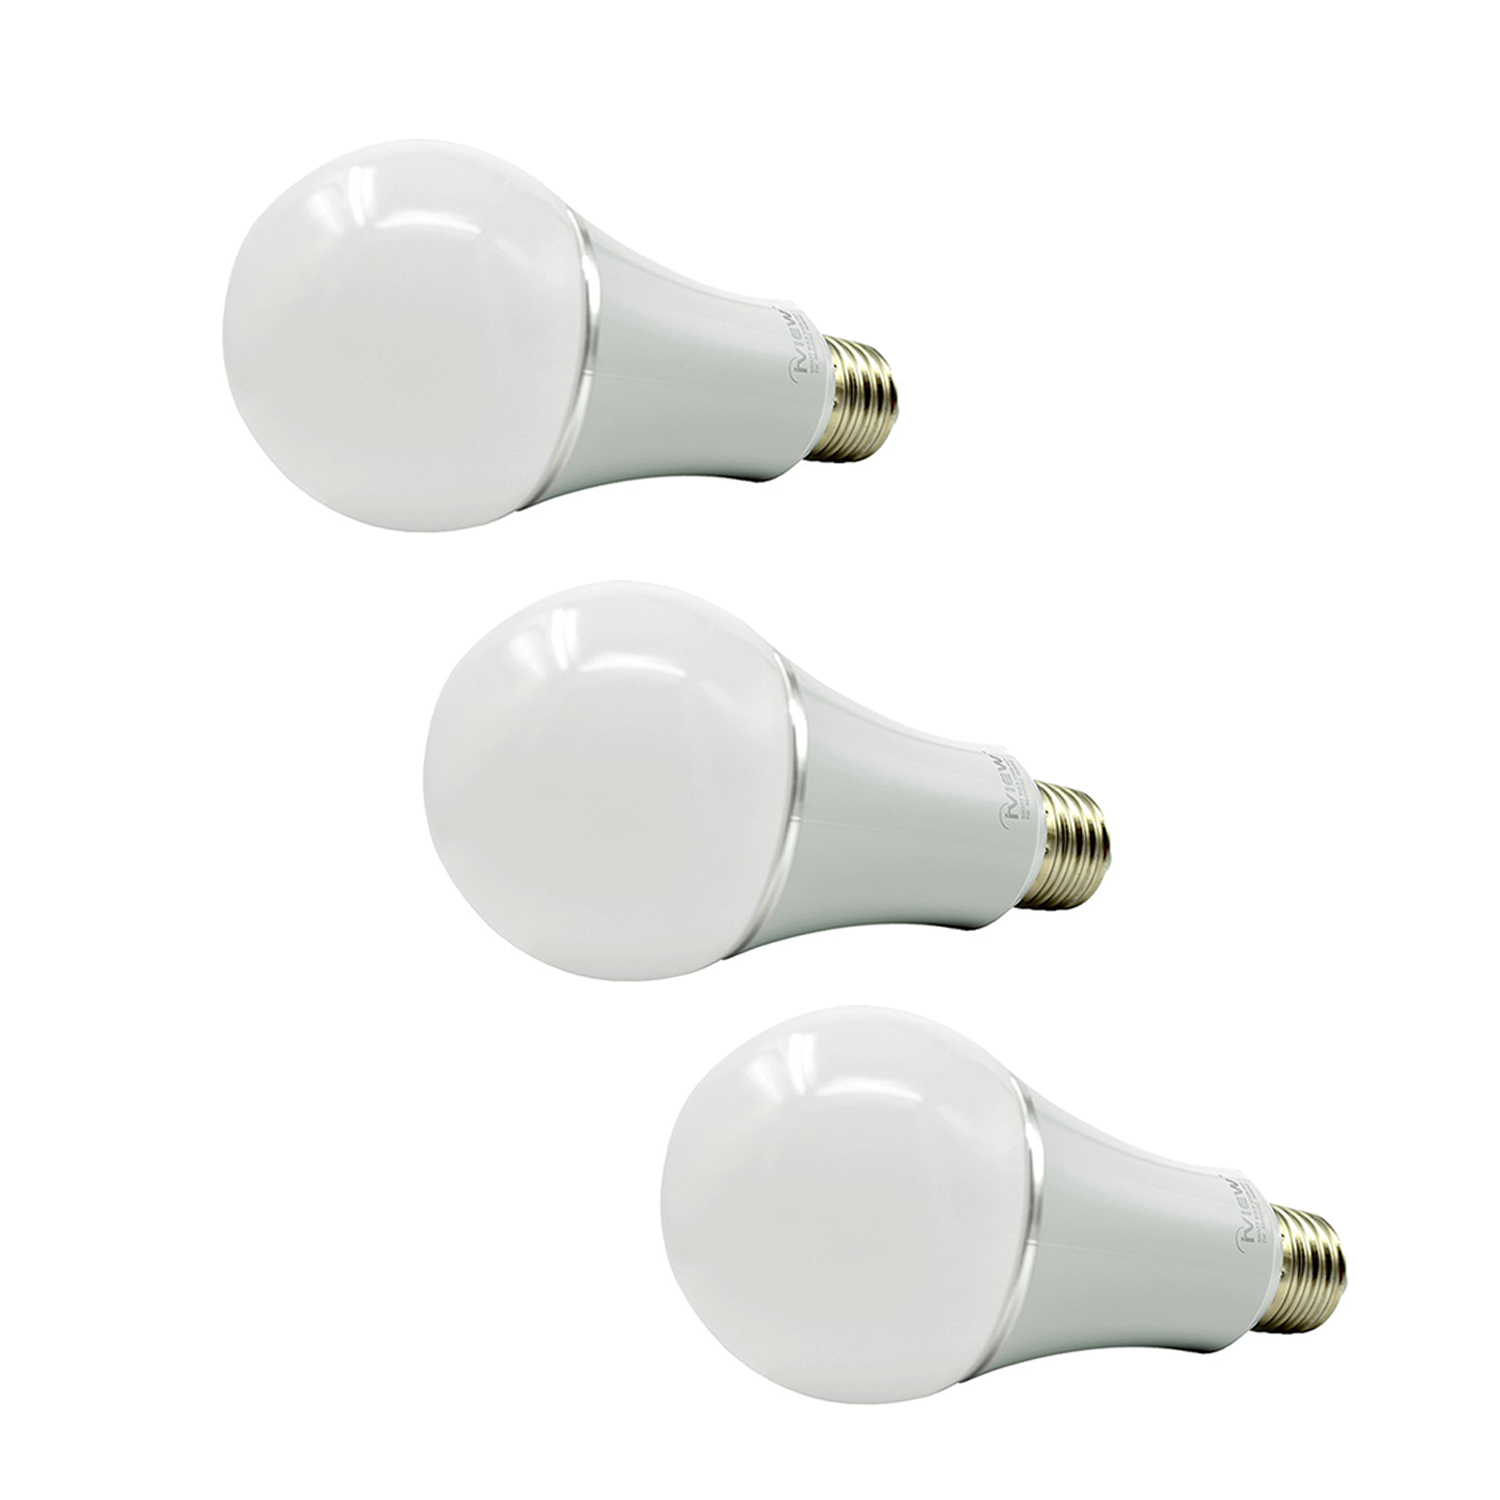 3pcs white ABS ISB600 Smart WiFi LED Bulb Multi Color Dimmable Free APP Remote Control 7w